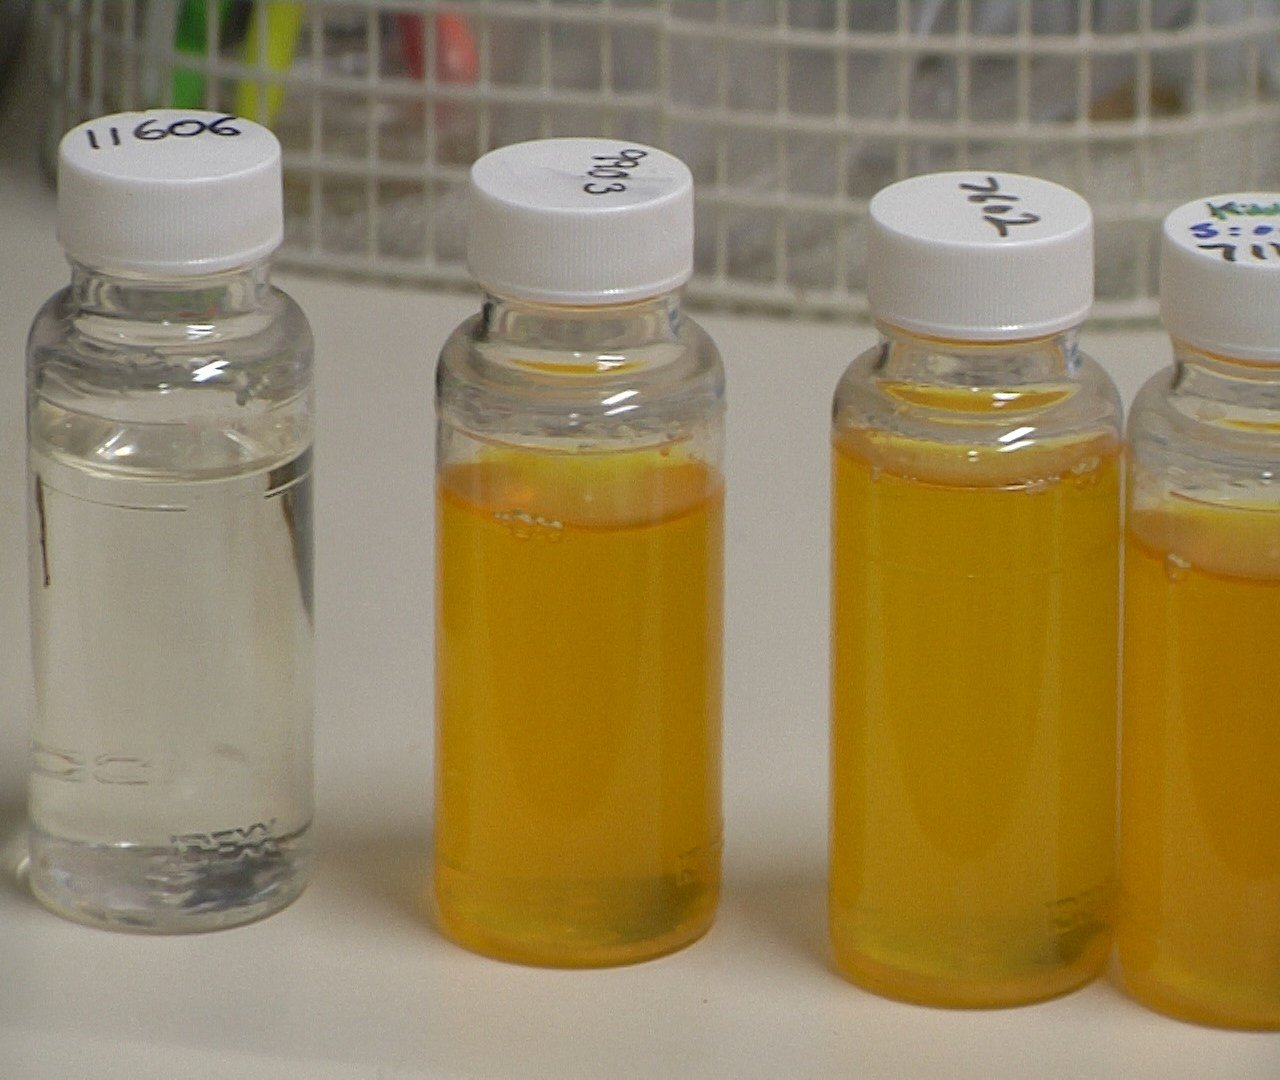 Clean water vs. water with coliform (yellow)